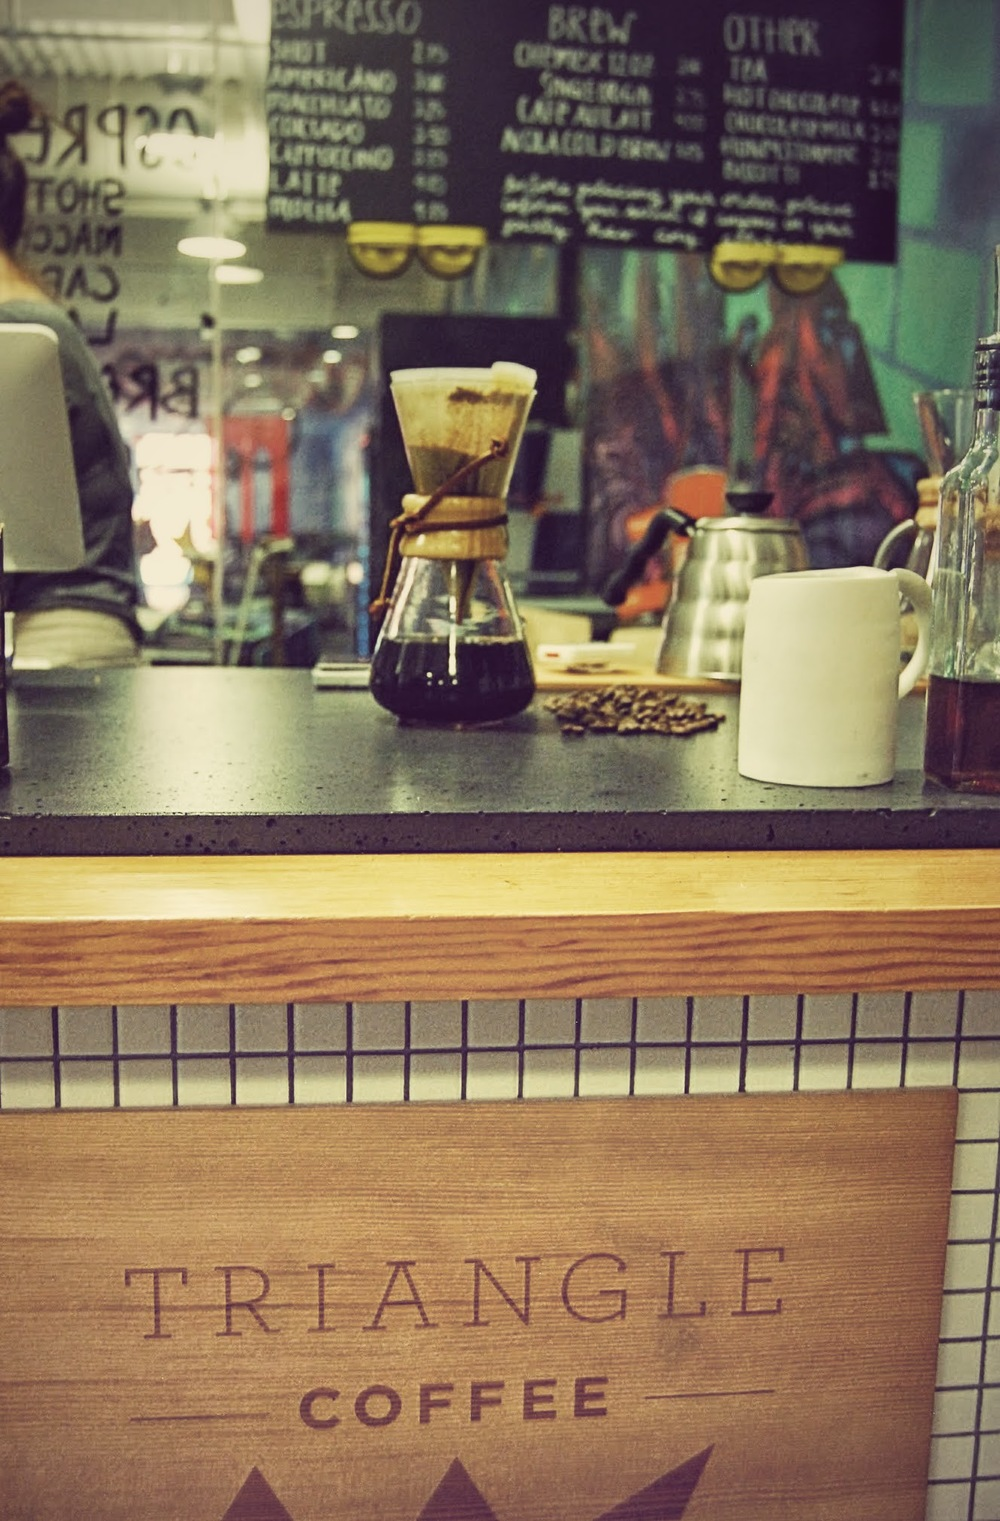 Triangle Coffee opened on September 1st, 2014 and steadily serves about 40 customers a day during the week.